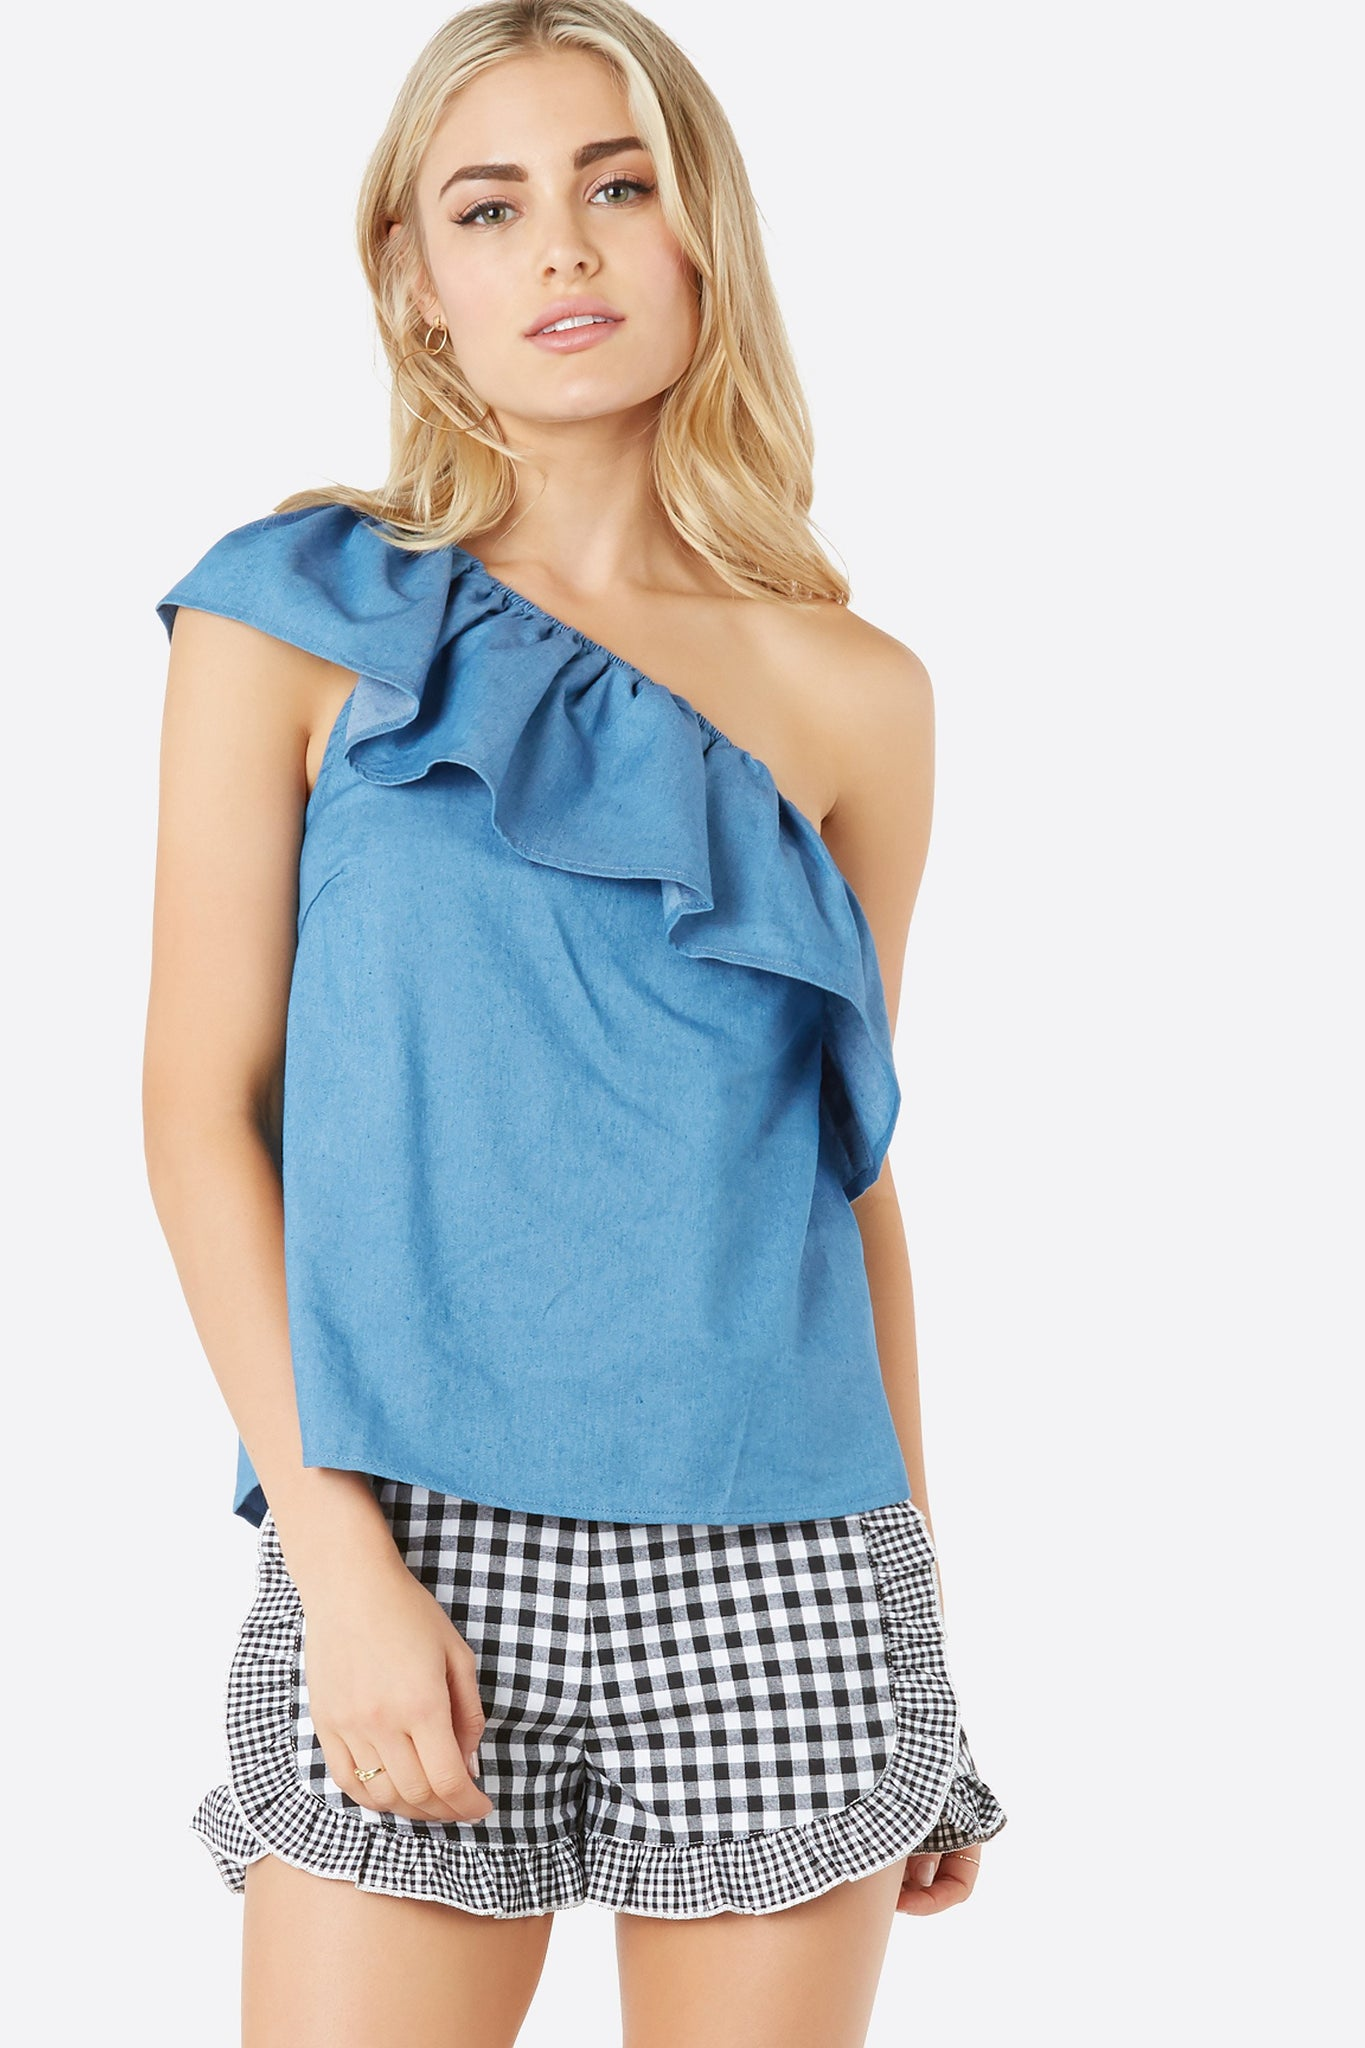 Chic one shoulder top with bold ruffle tier design. Relaxed fit with slightly curved hem finish.